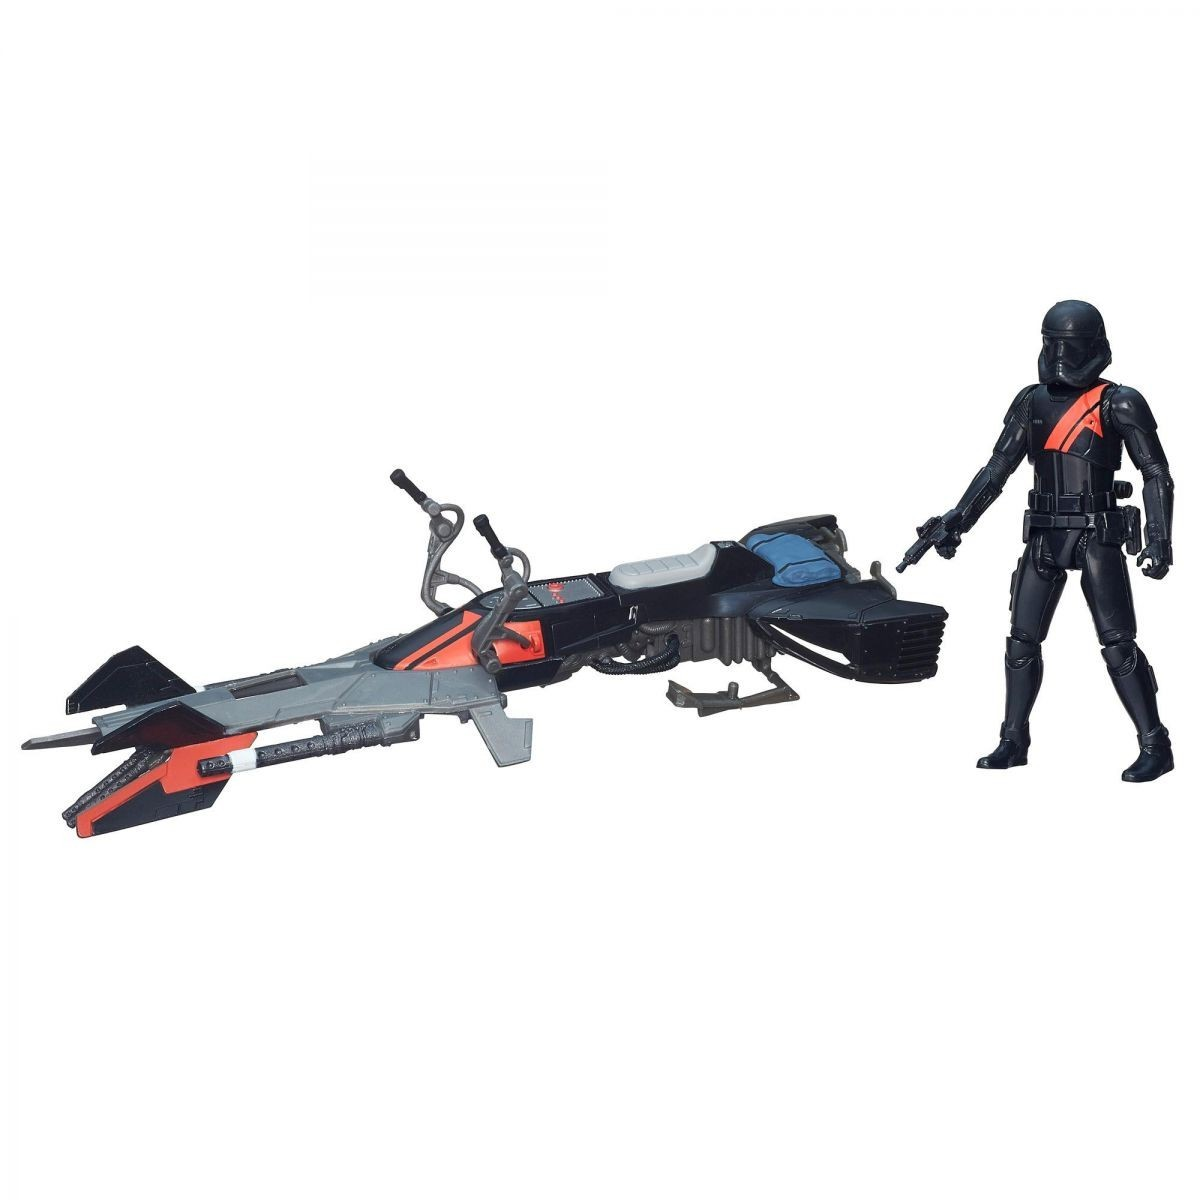 Star Wars The Force Awakens: Elite Speeder Bike - Hasbro